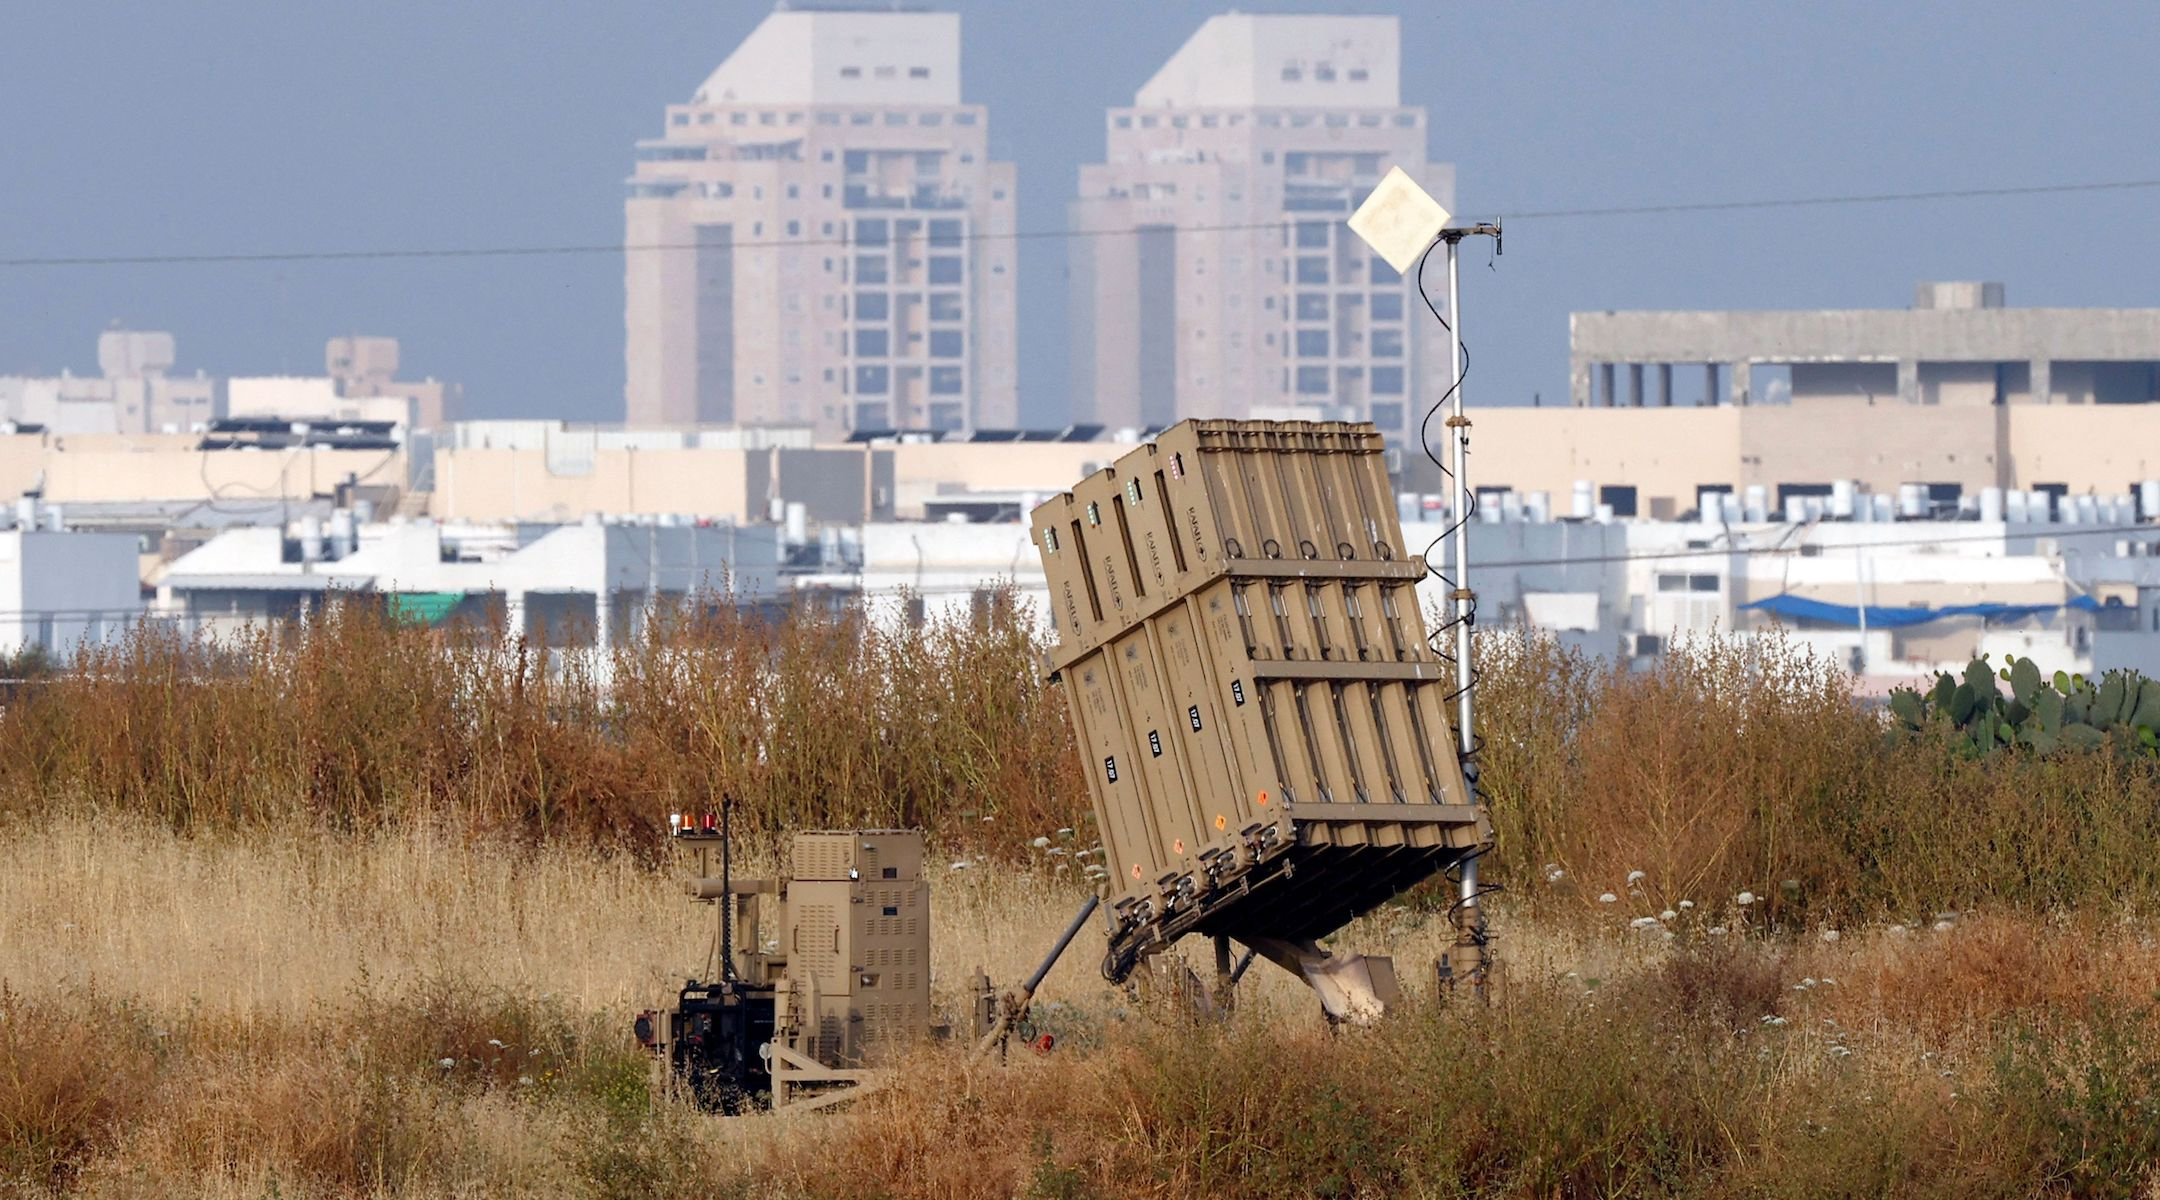 An Iron Dome battery outside the southern Israeli city of Ashdod, on April 24, 2021. (Jack Guez/AFP via Getty Images)